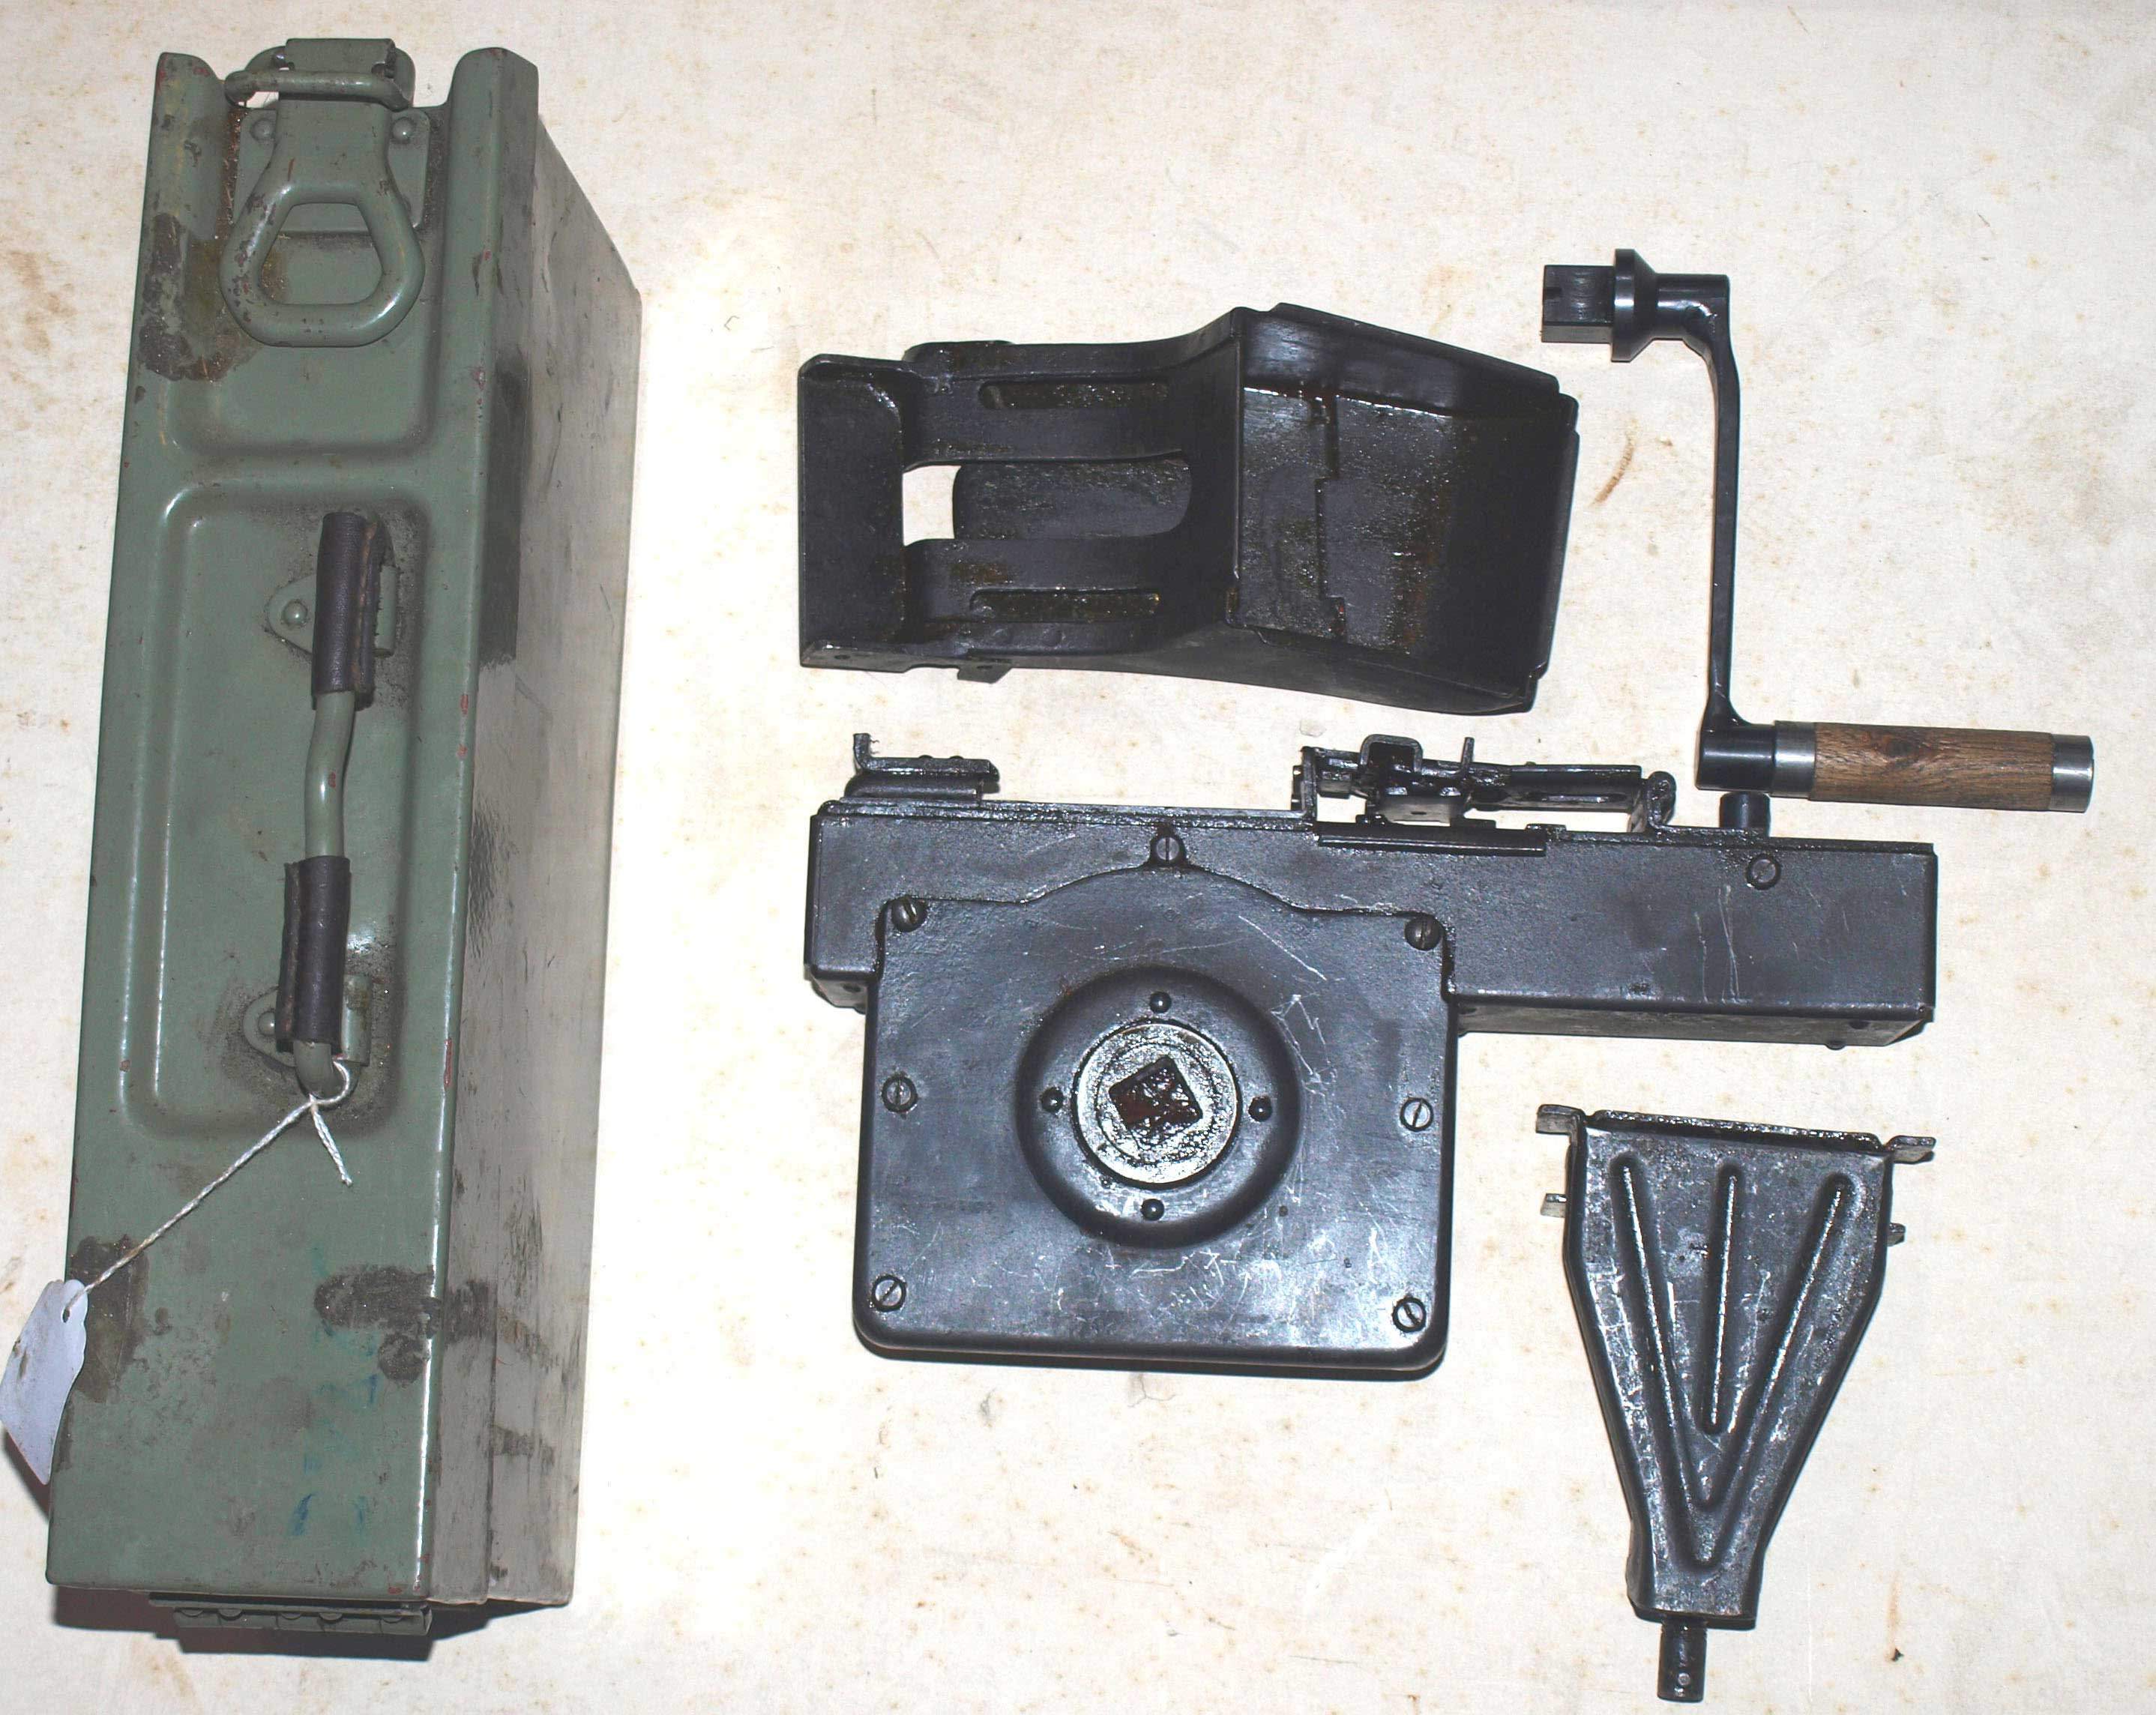 7.92 Belt Loader MG42, MG34 etc